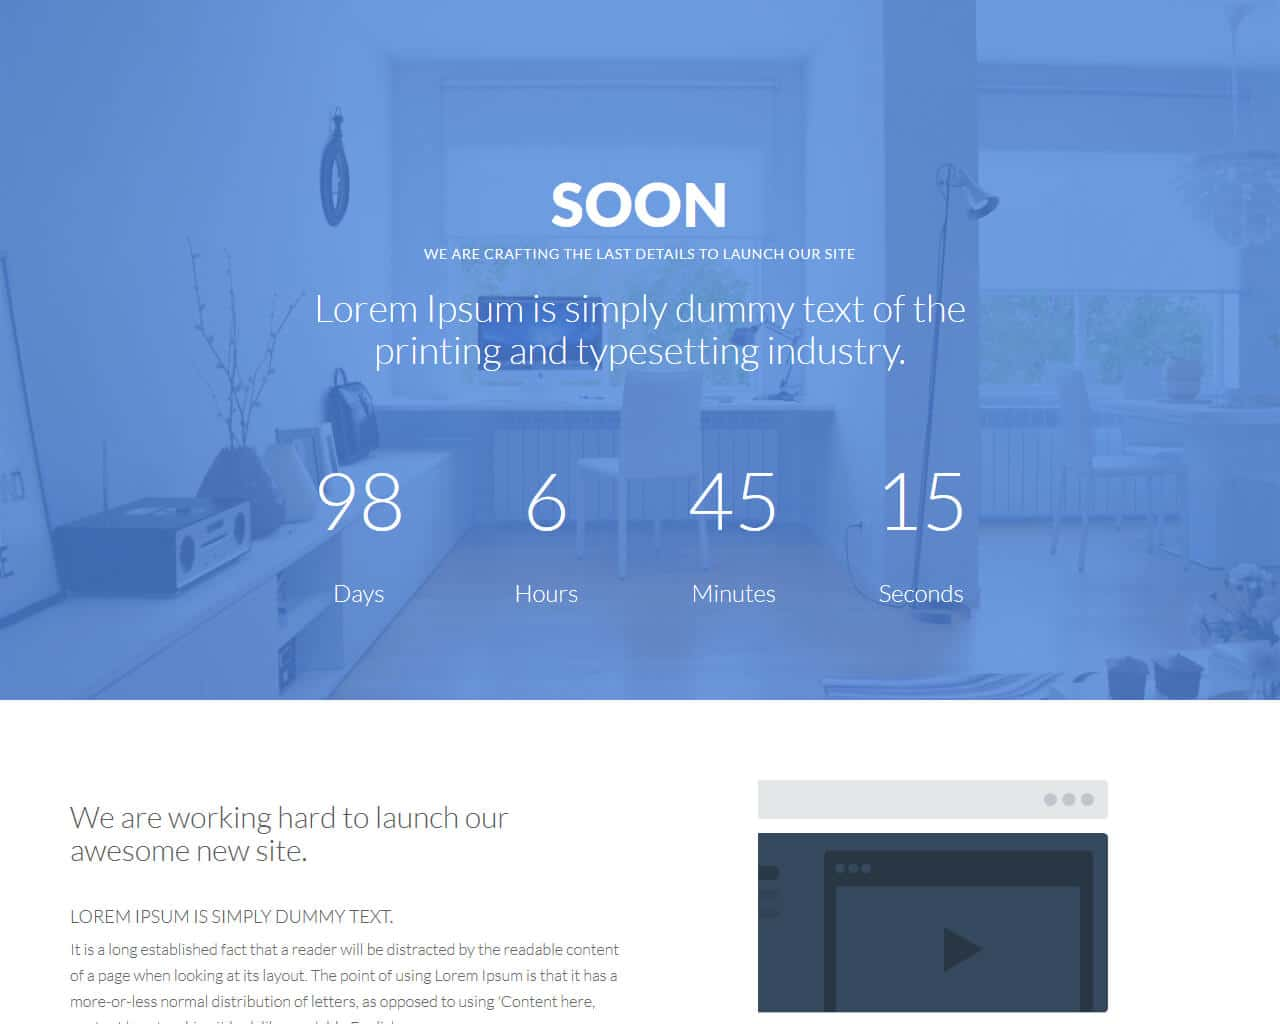 Soon – Website Under Construction Template